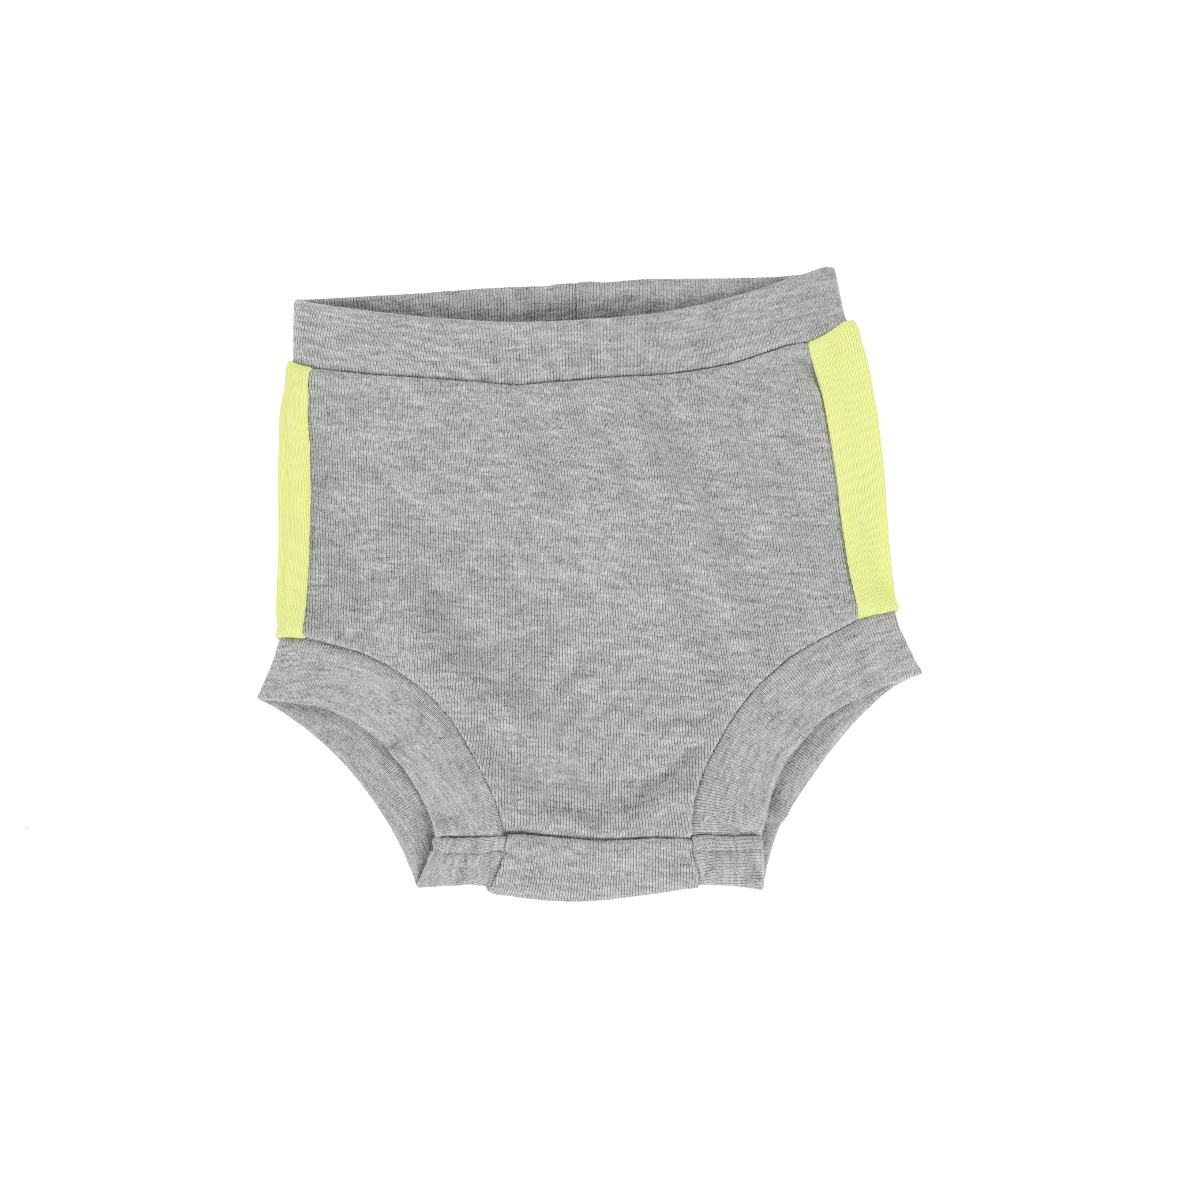 Analogie GreyNeon Linear High Waisted Bloomers